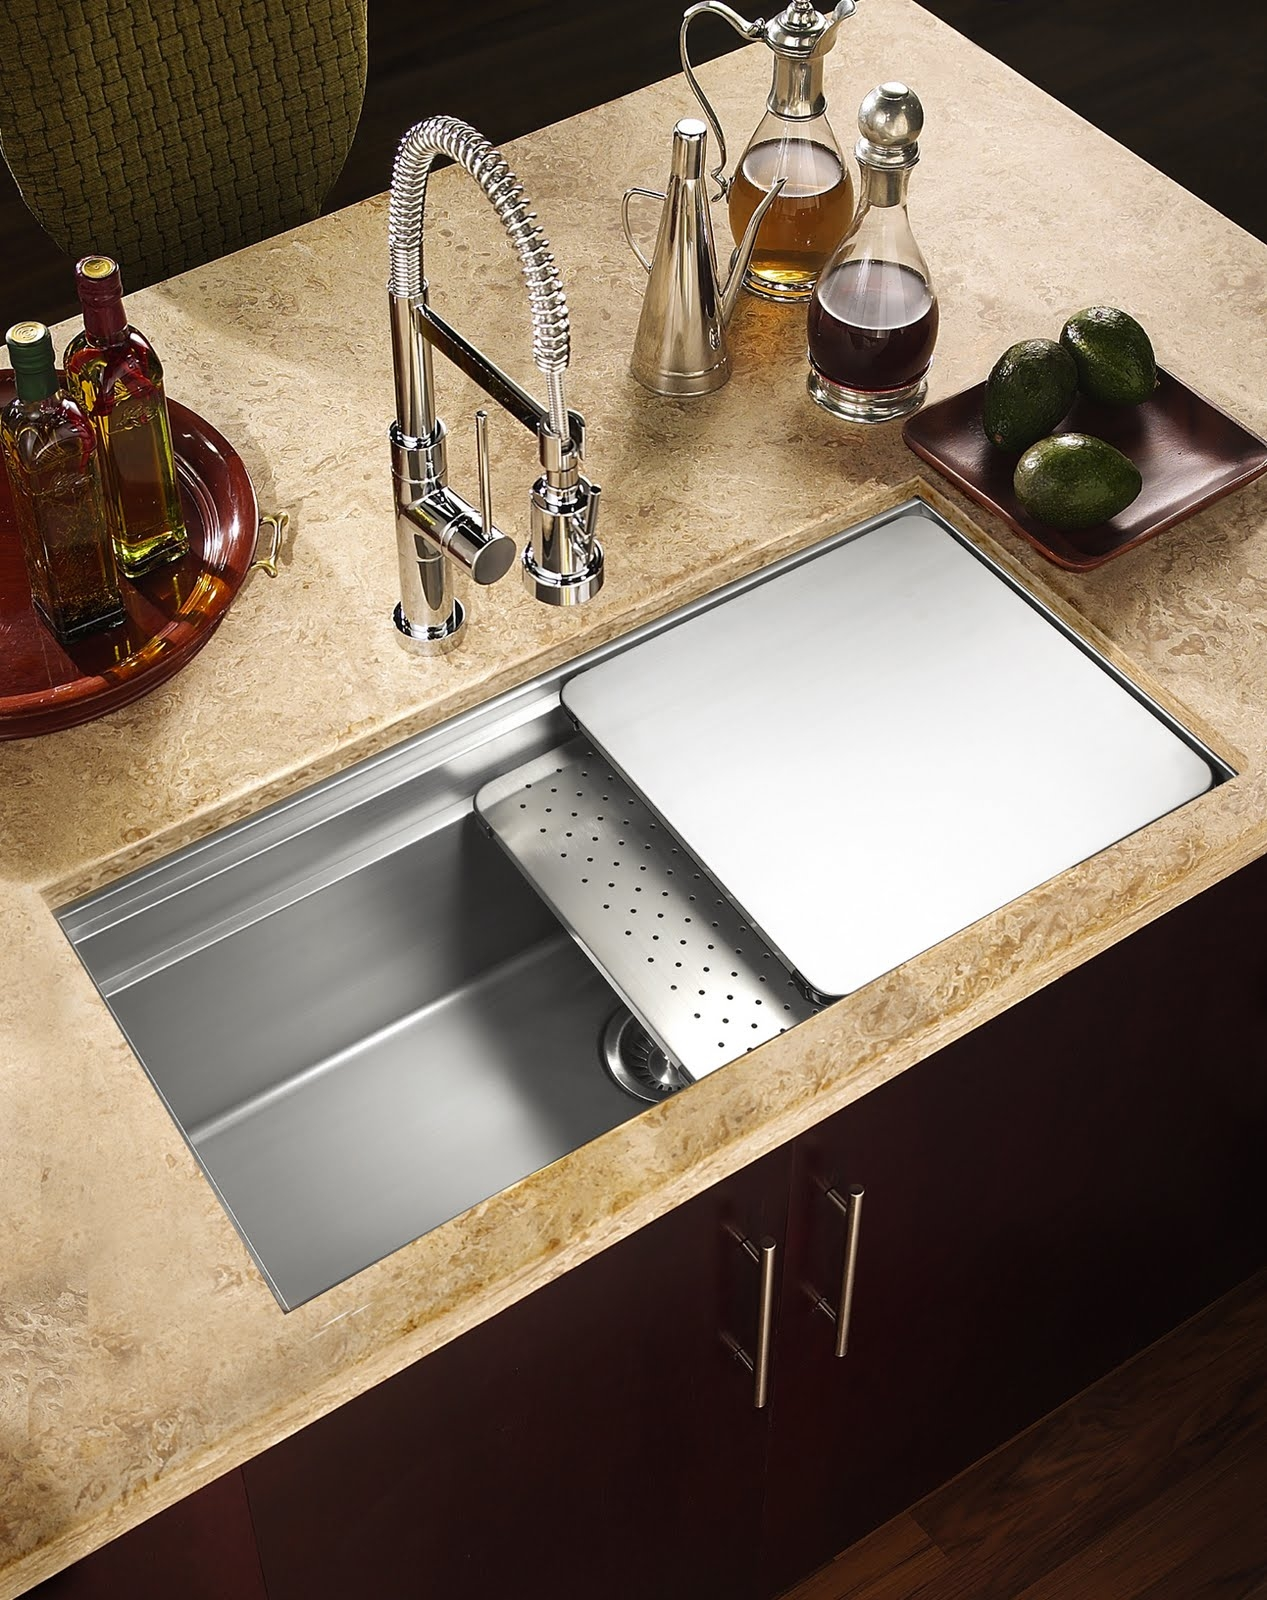 Ideas, best kitchen faucets for granite countertops best kitchen faucets for granite countertops kitchen white granite kitchen countertops with grey metal chrome 1267 x 1600  .